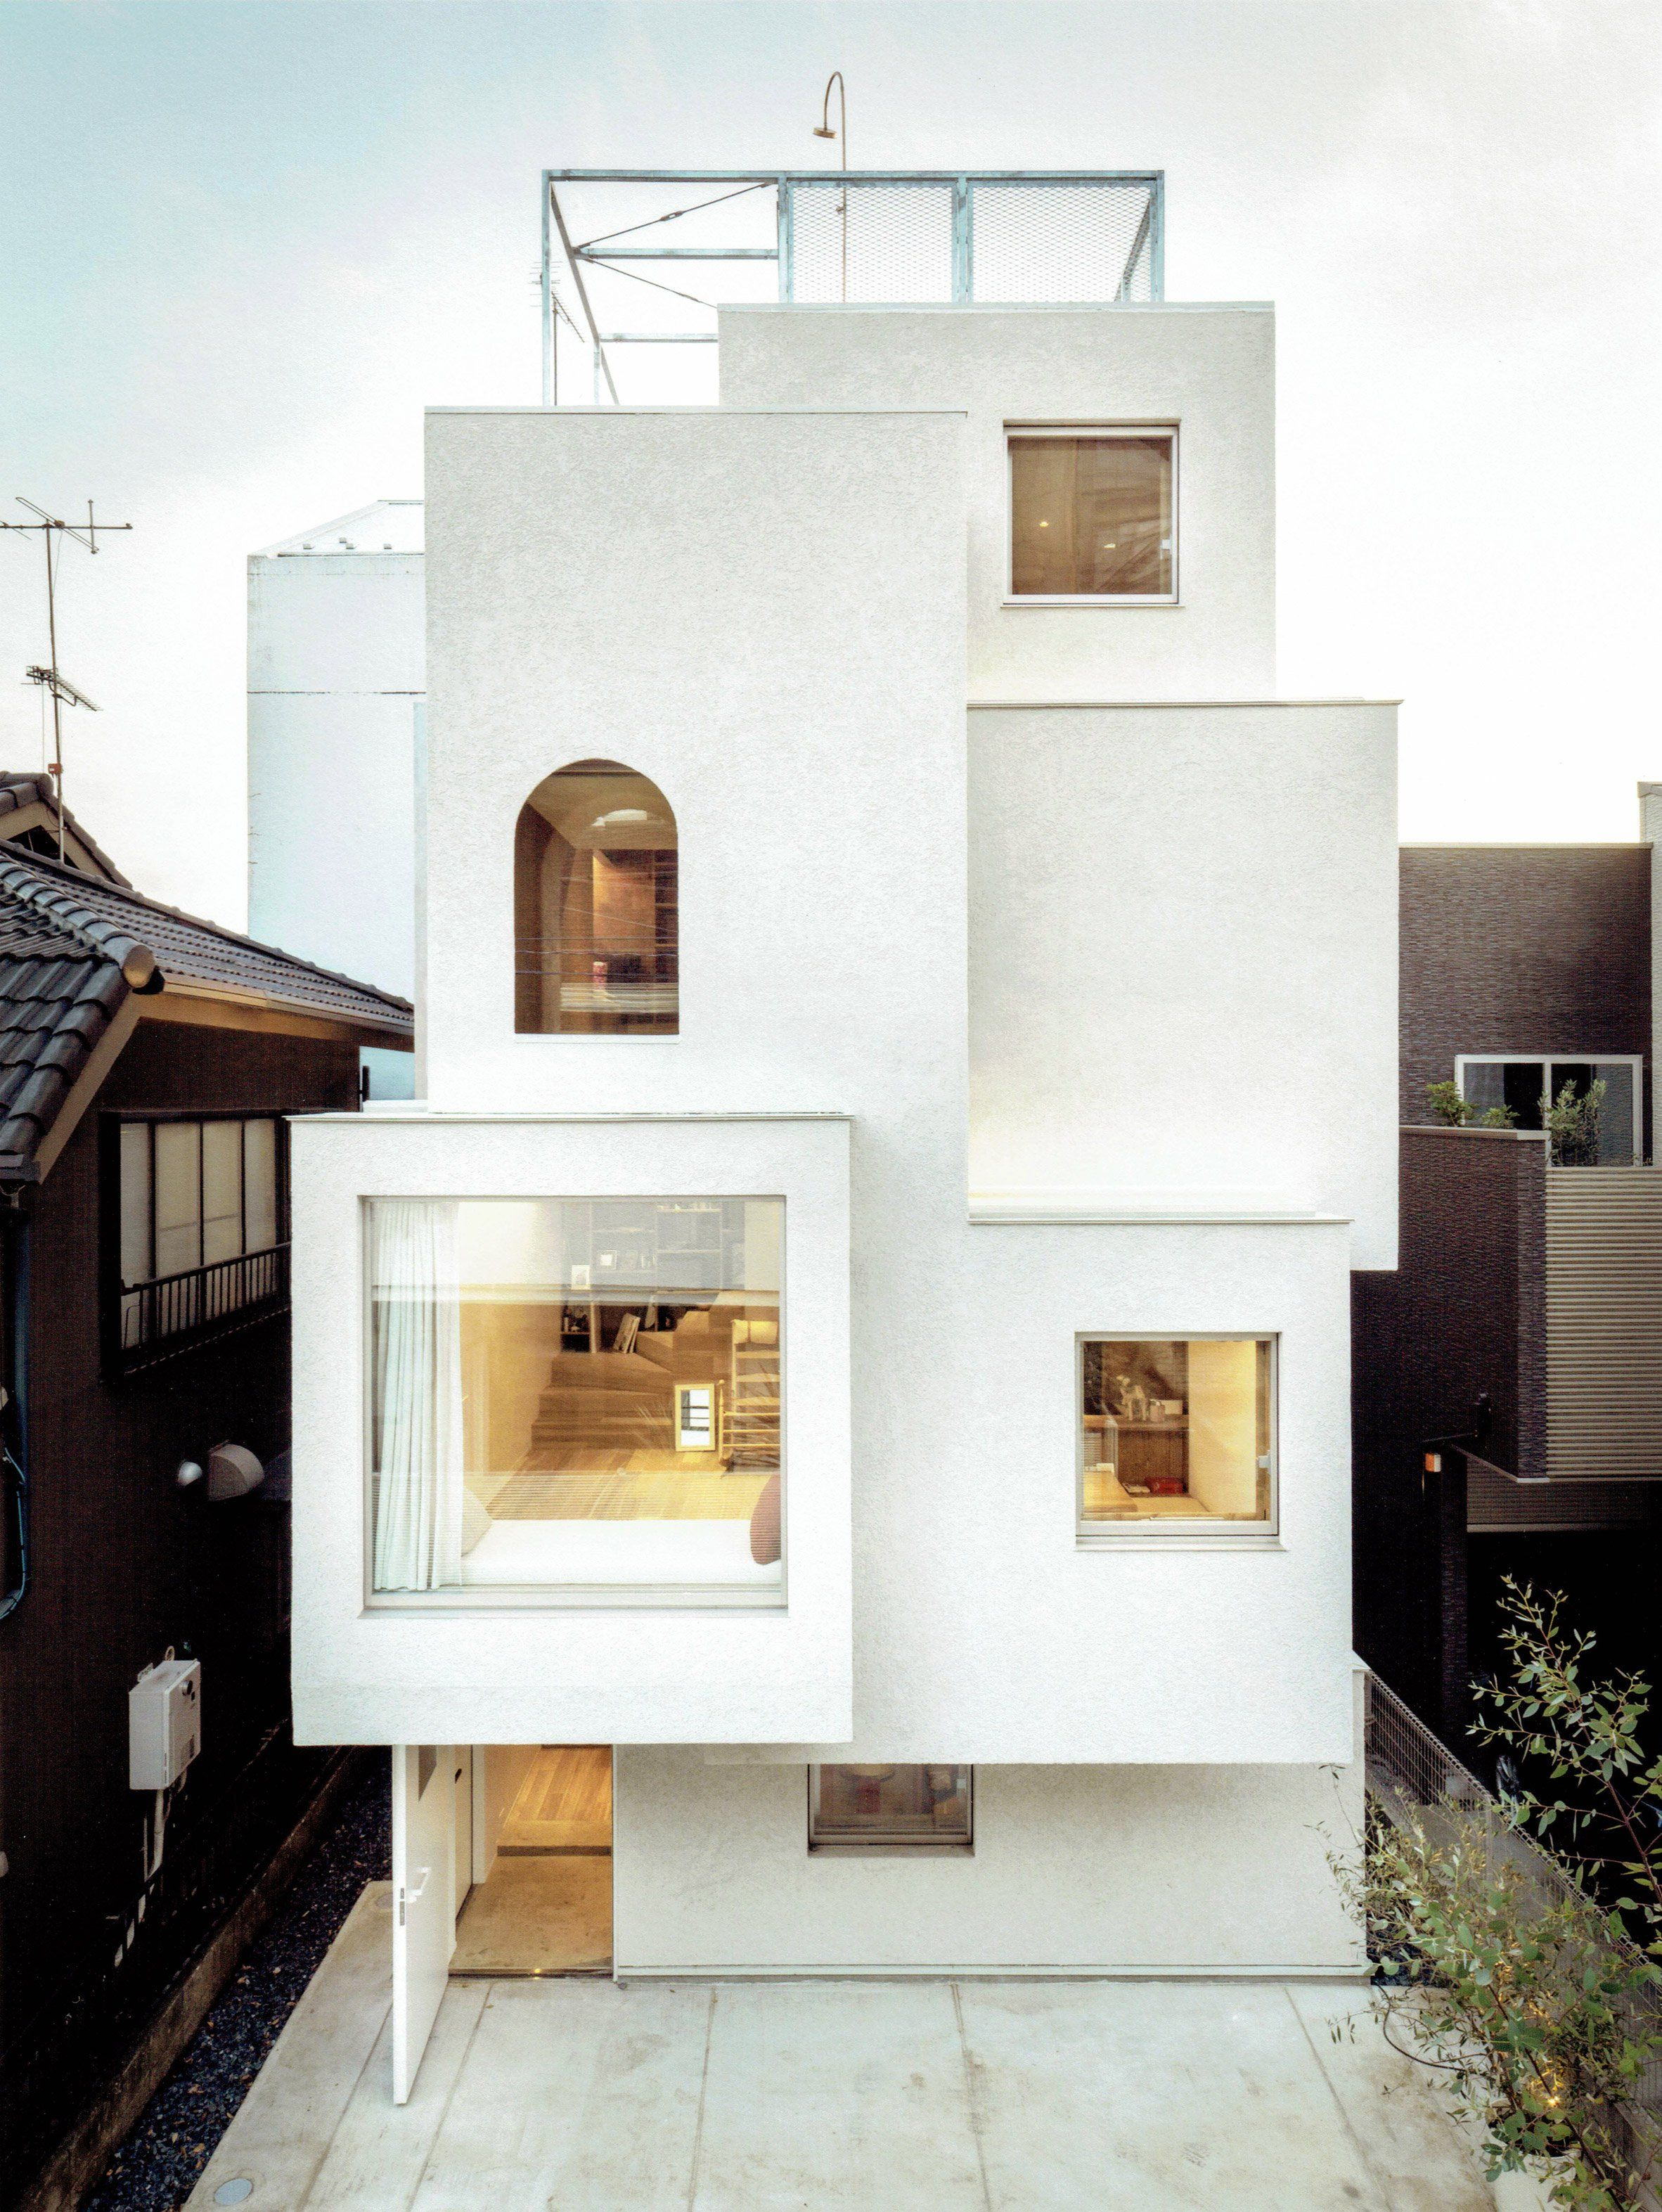 House in the City by Ryosuke Fujii | Architecture / habitat ... on hut house designs, independent house designs, pole houses designs, forest house designs, portico entrance designs, nature house designs, permaculture house designs, light house designs, muji house designs, birdhouse house designs, family house designs, hunting house designs, unique house designs, harvest house designs, shelter house designs, residential entry portico interior designs, ikea house designs, wildlife house designs, fish house designs, tree house designs,